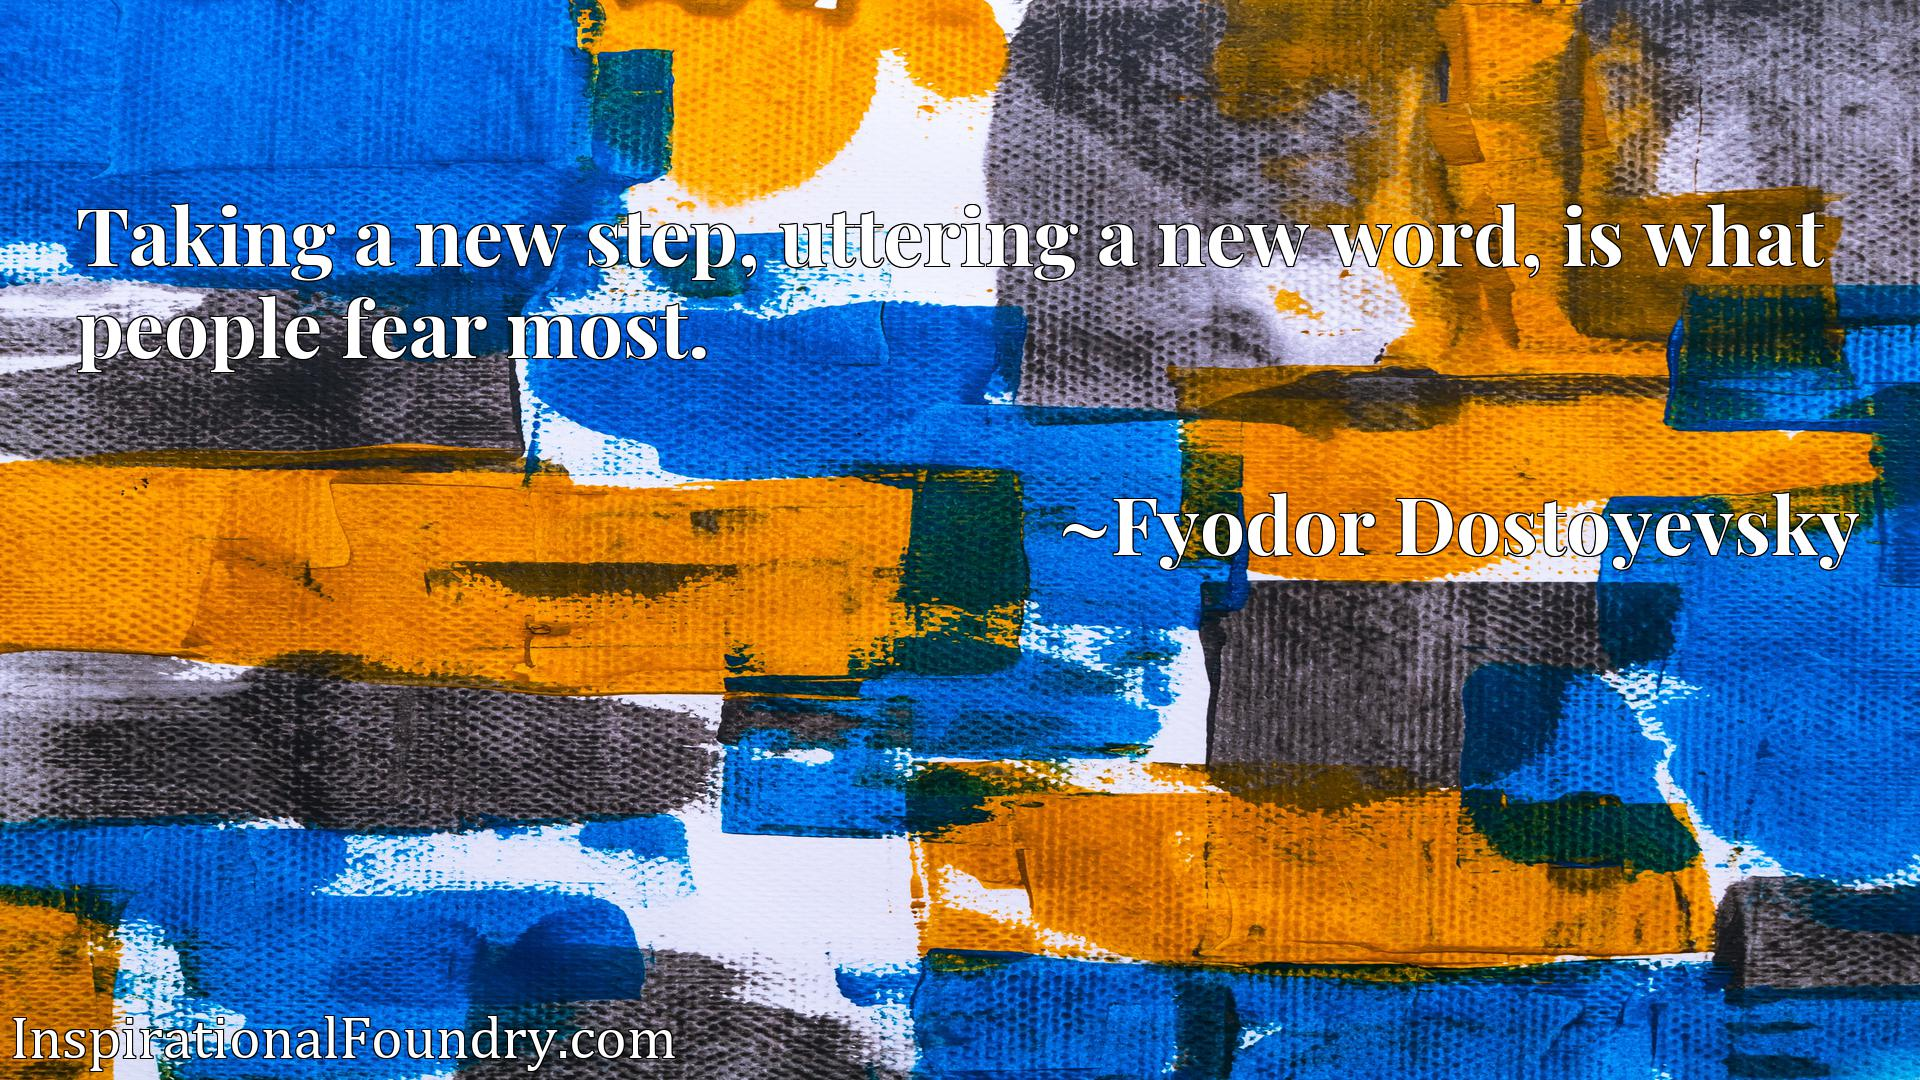 Taking a new step, uttering a new word, is what people fear most.